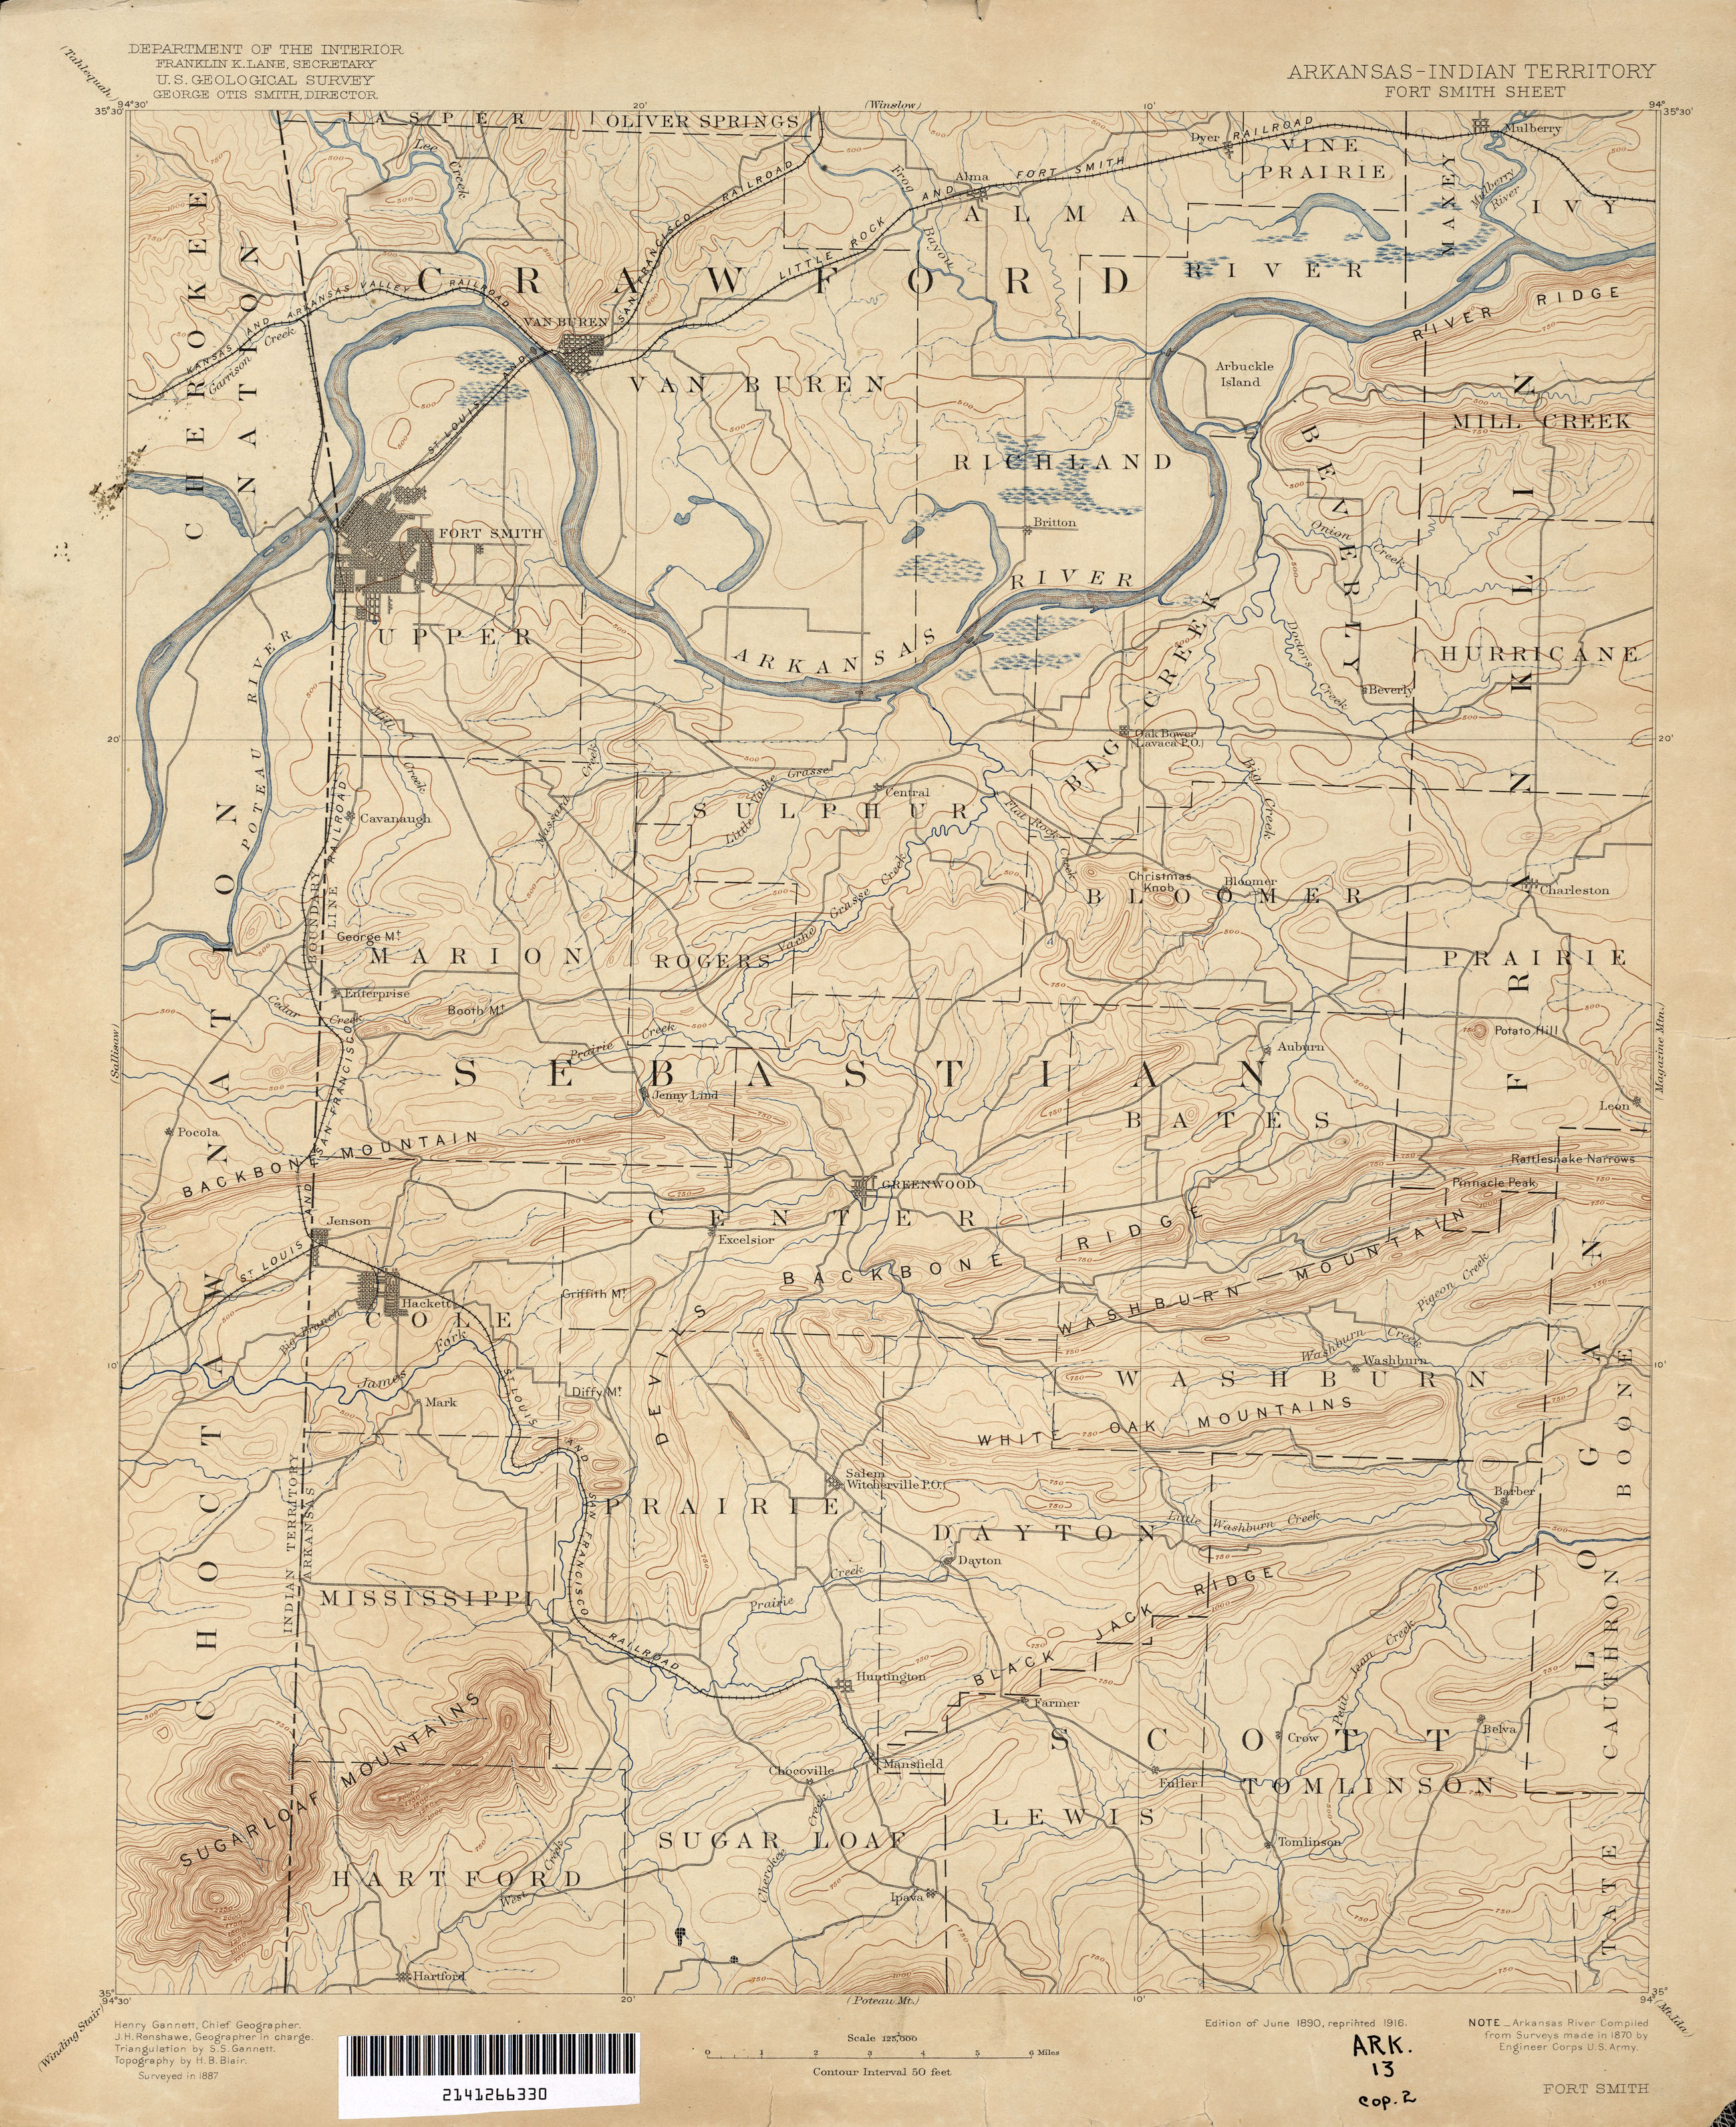 Arkansas Historical Topographic Maps - Perry-Castañeda Map ... on map of arizona, map of mo, map of arga, map of arkansas, map of ca, map of ok, map of gh, map of vb, map of il, map of la, map of gl, map of re, map of va, map of le, map of lp, map of ic, map of ms, map of tx, map of usa, map of ak,